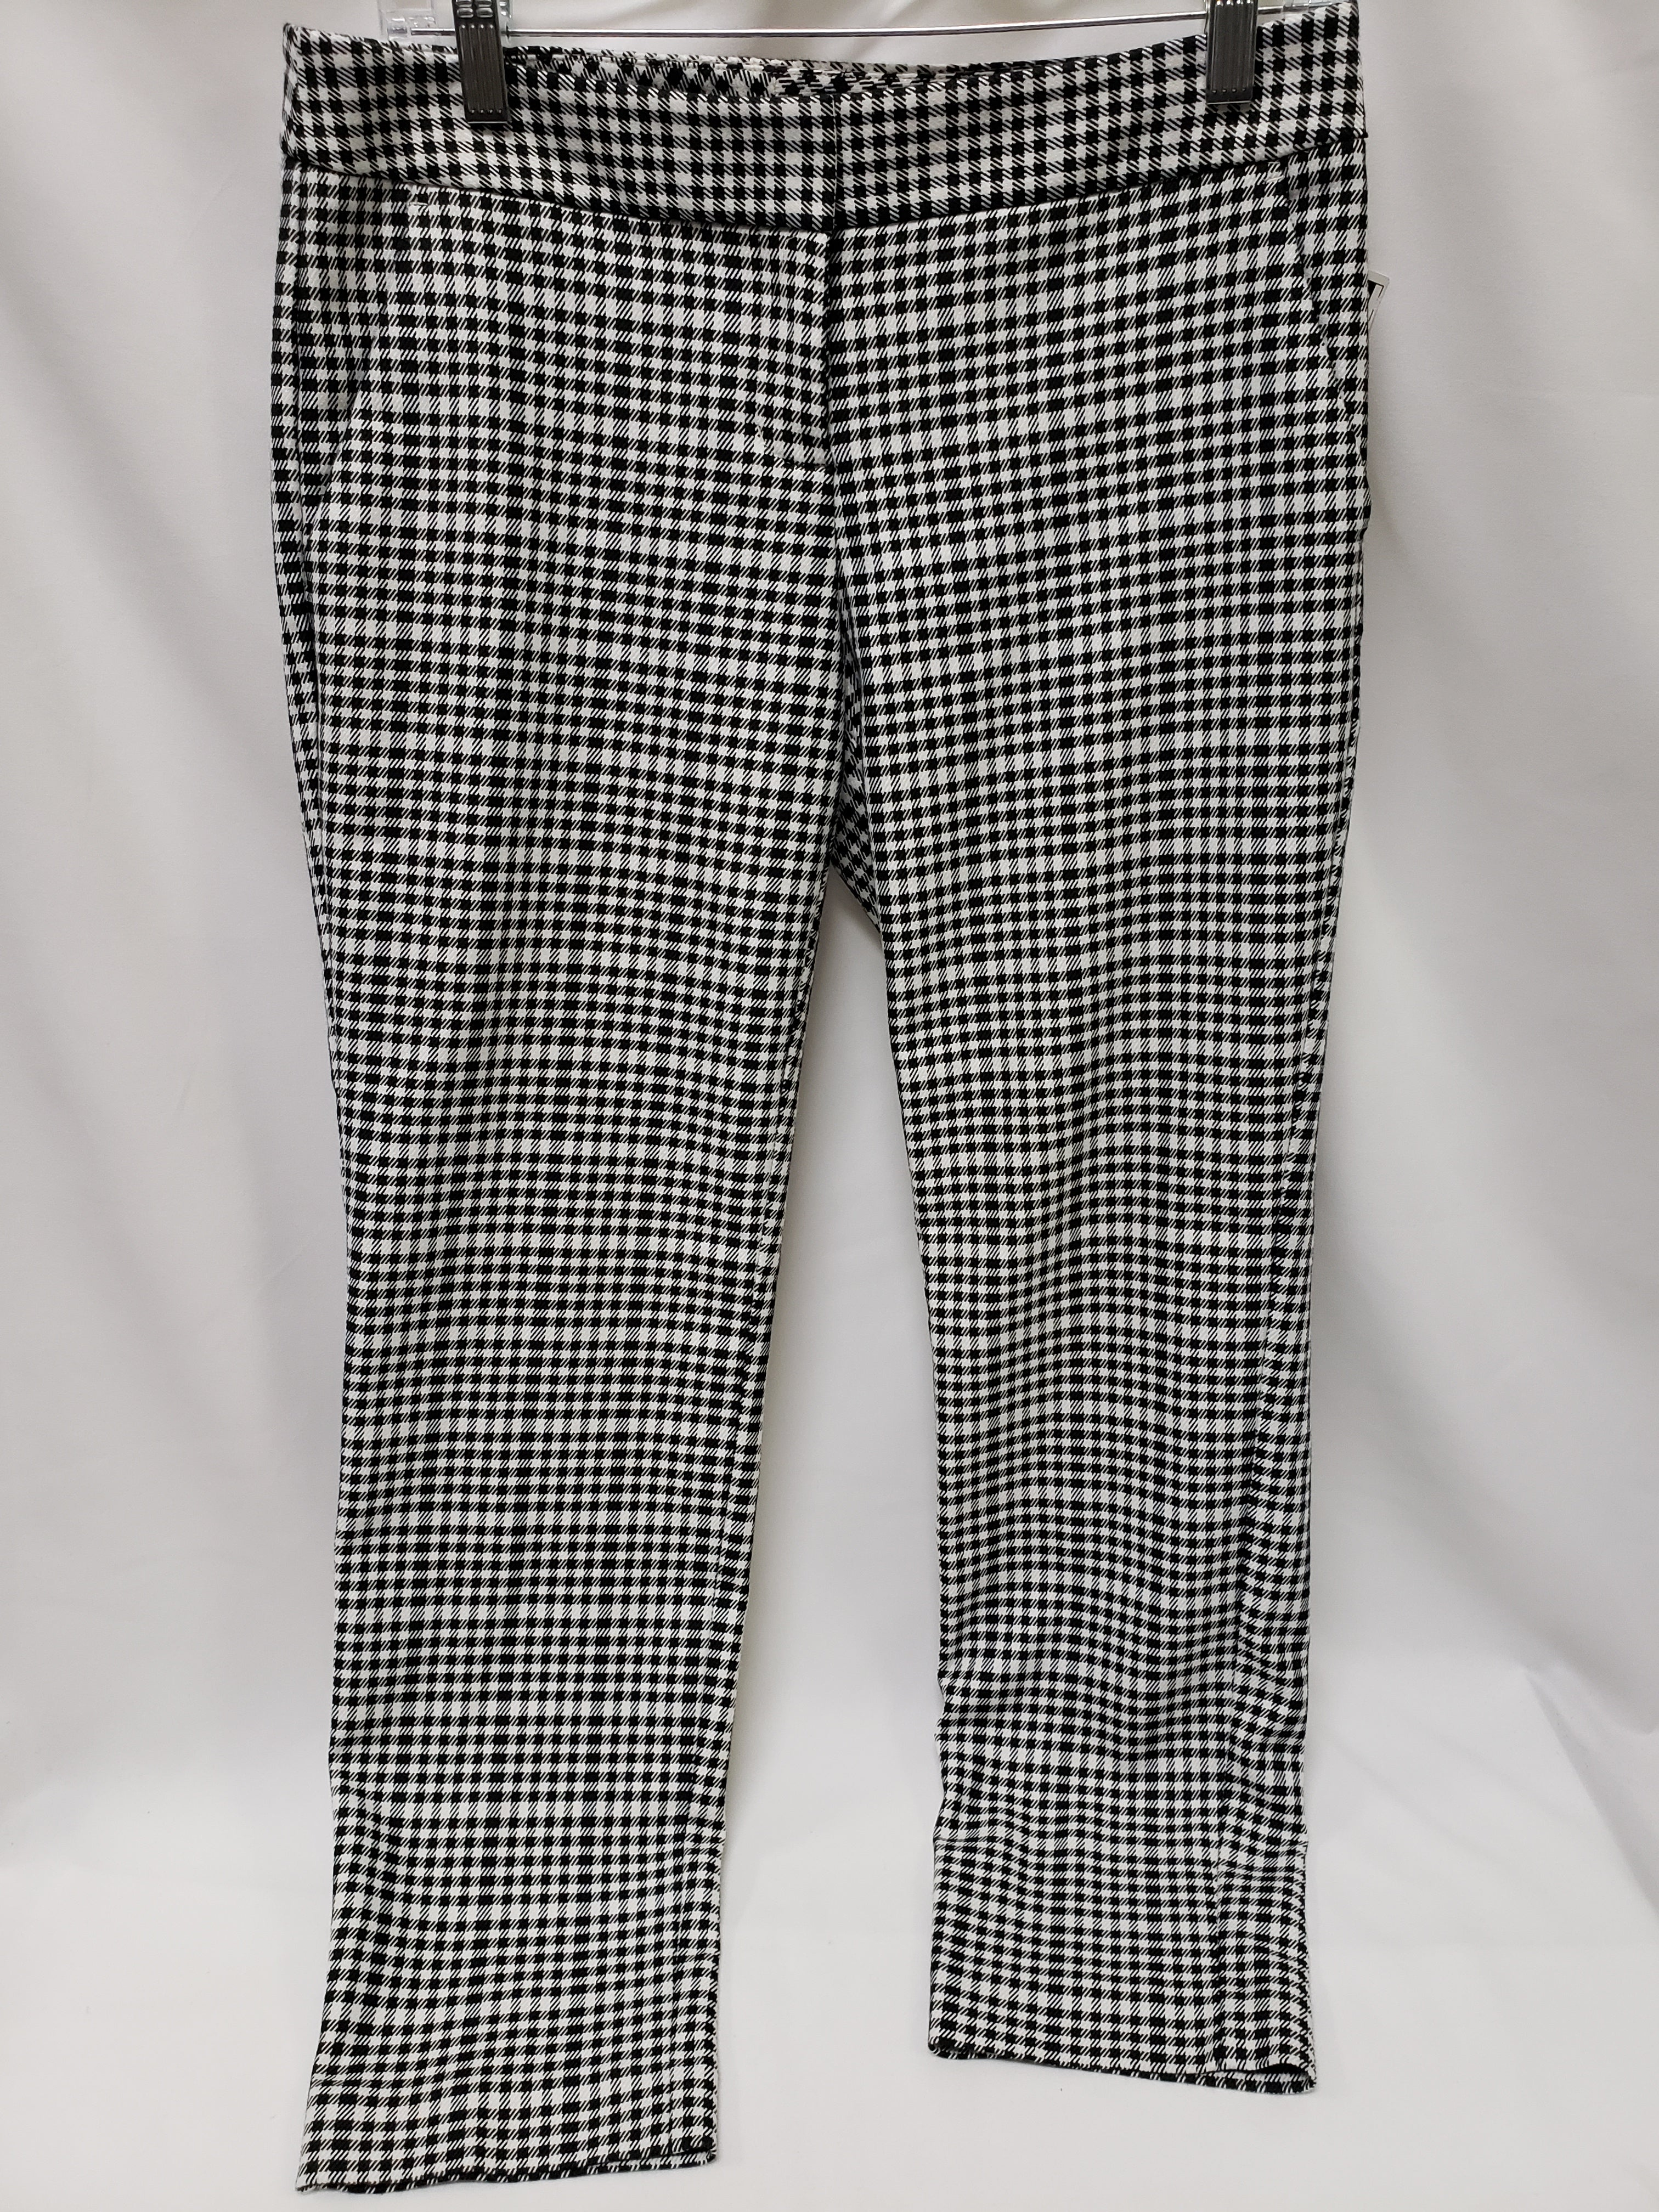 Primary Photo - BRAND: EXPRESS O <BR>STYLE: PANTS <BR>COLOR: BLACK WHITE <BR>SIZE: 4 <BR>SKU: 155-155178-9341